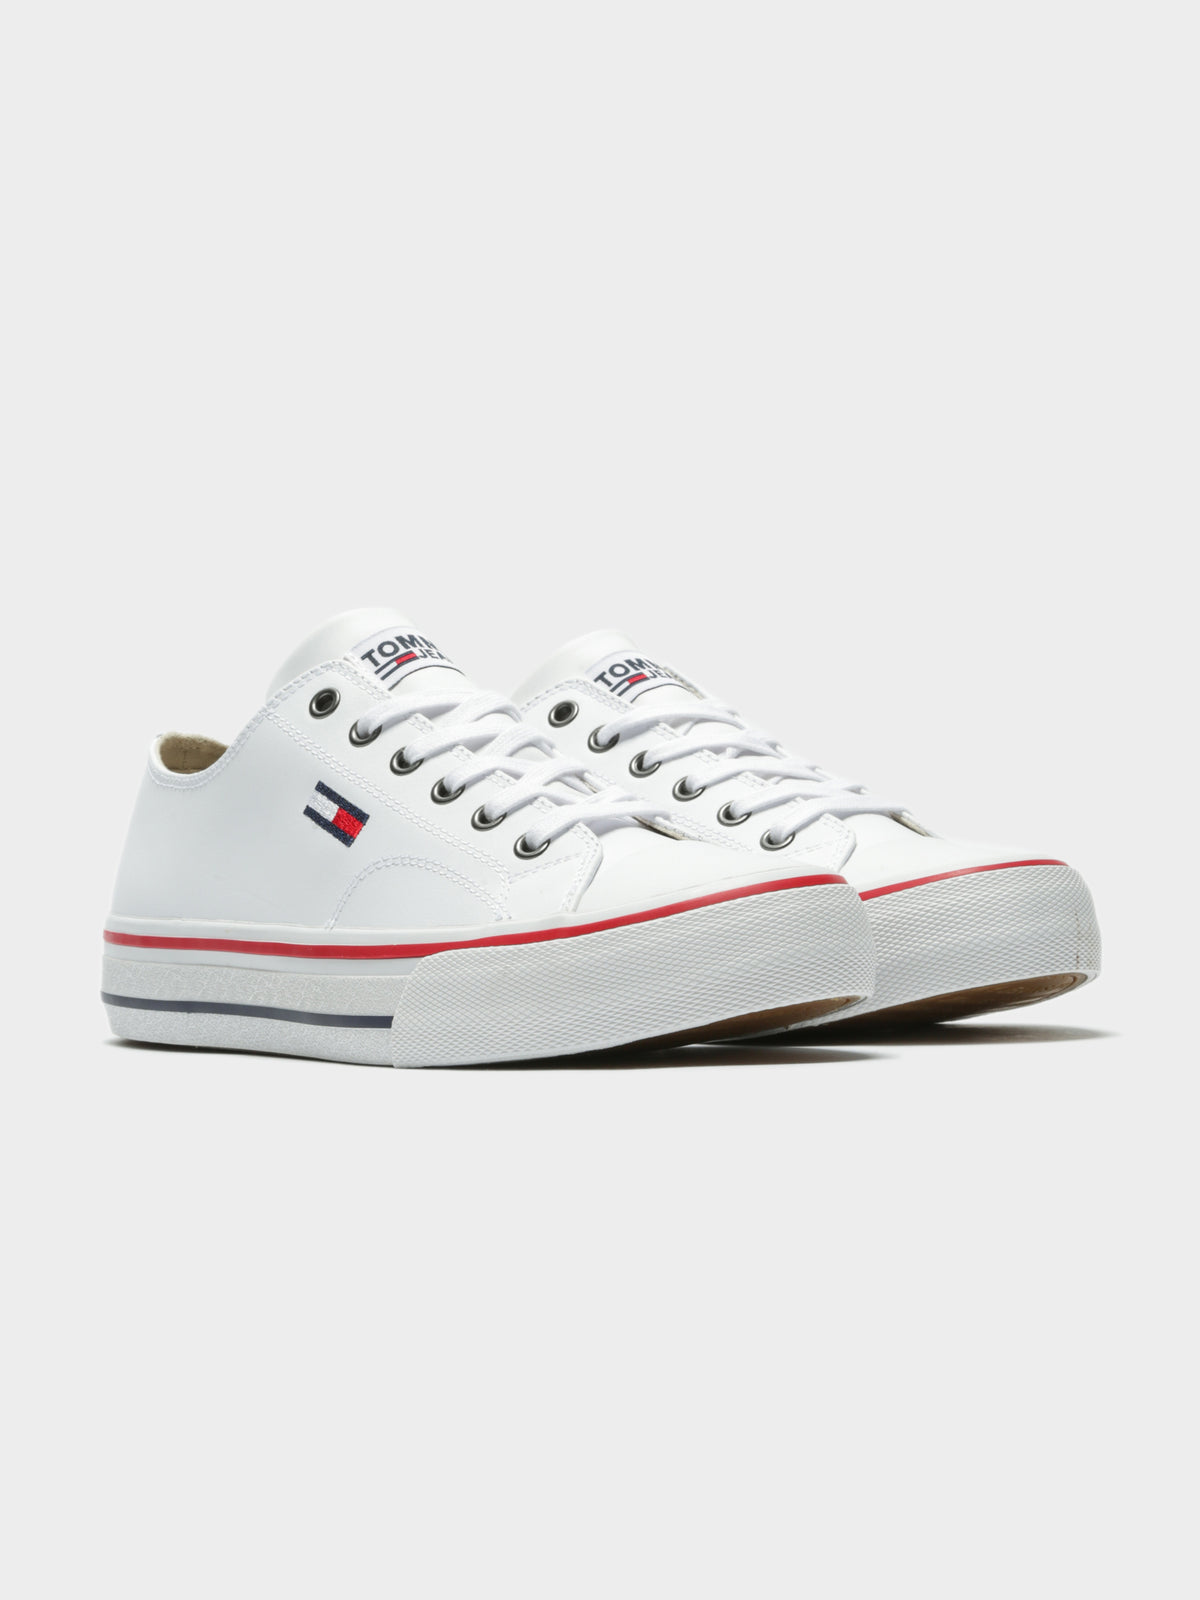 Unisex Leather City Sneakers in White